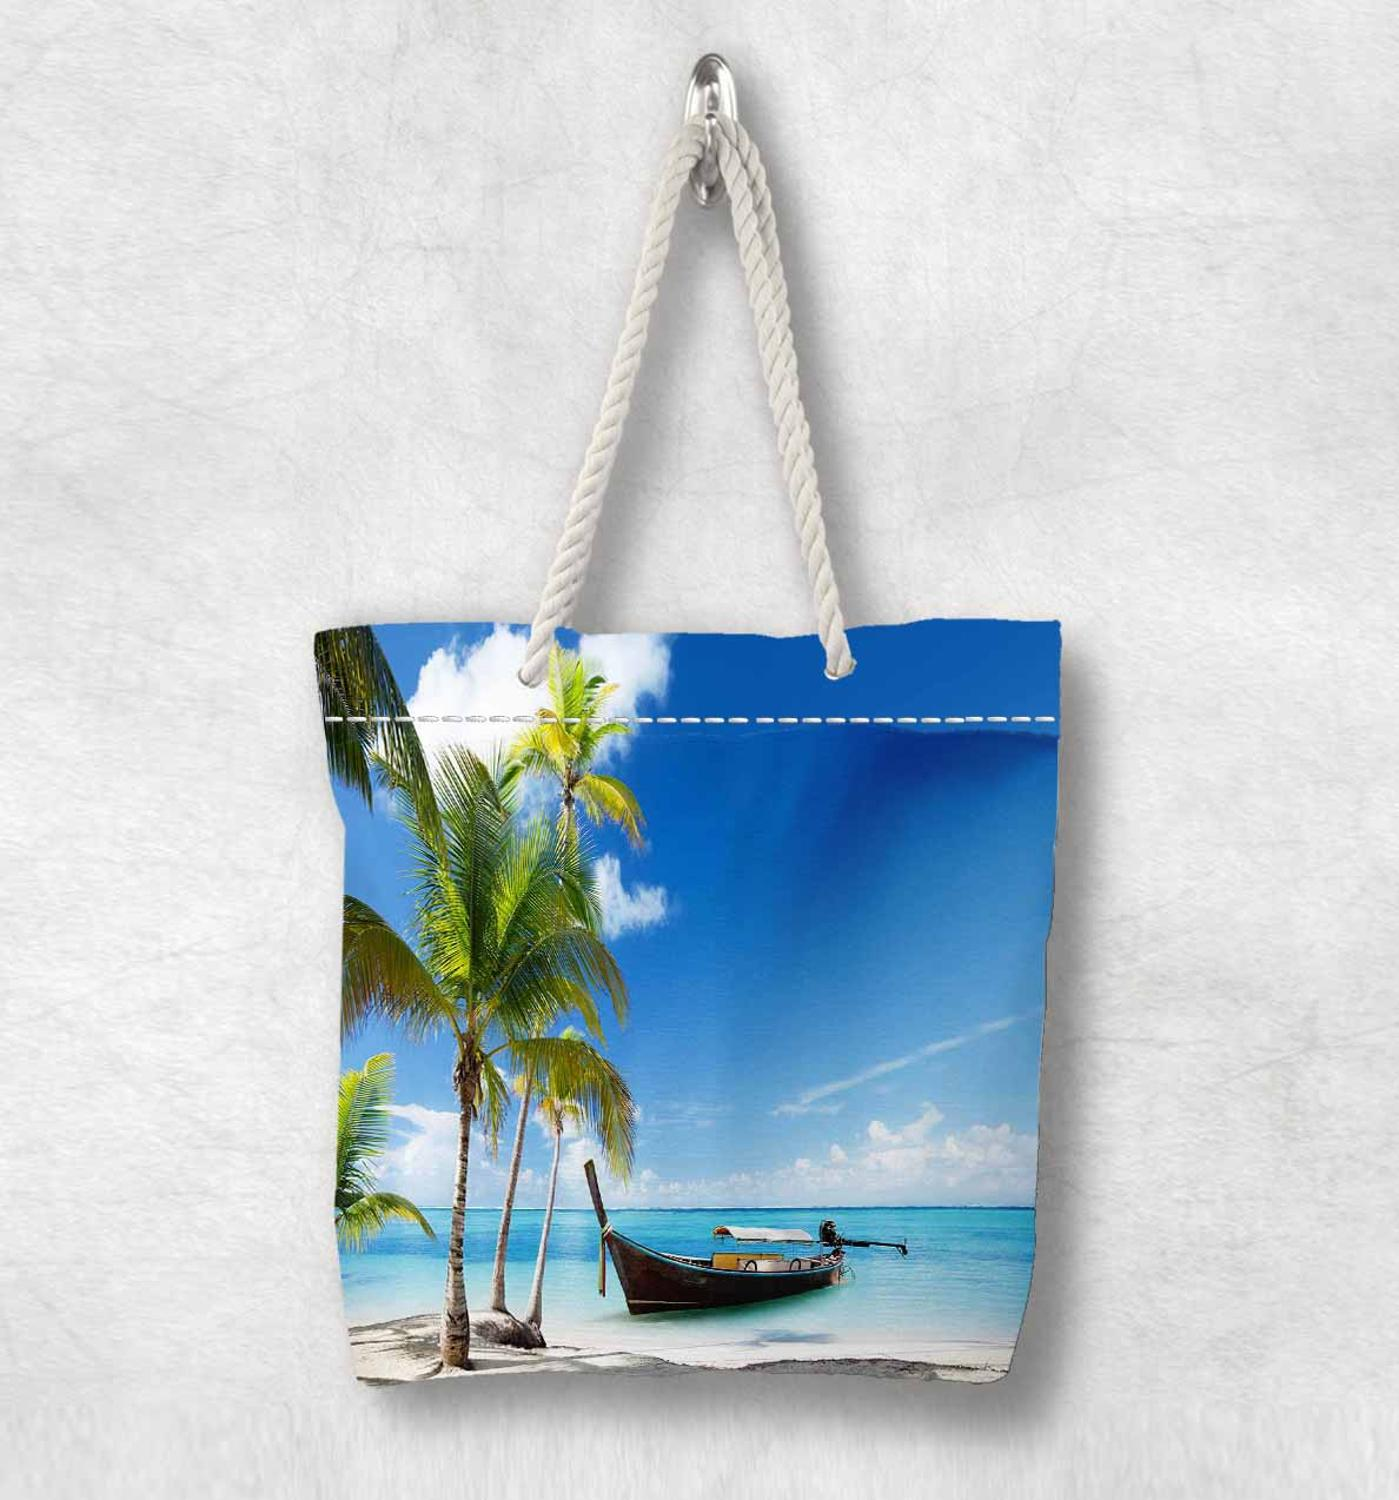 Else Green Palm Trees Tropical Beach Sand New Fashion White Rope Handle Canvas Bag Cotton Canvas Zippered Tote Bag Shoulder Bag